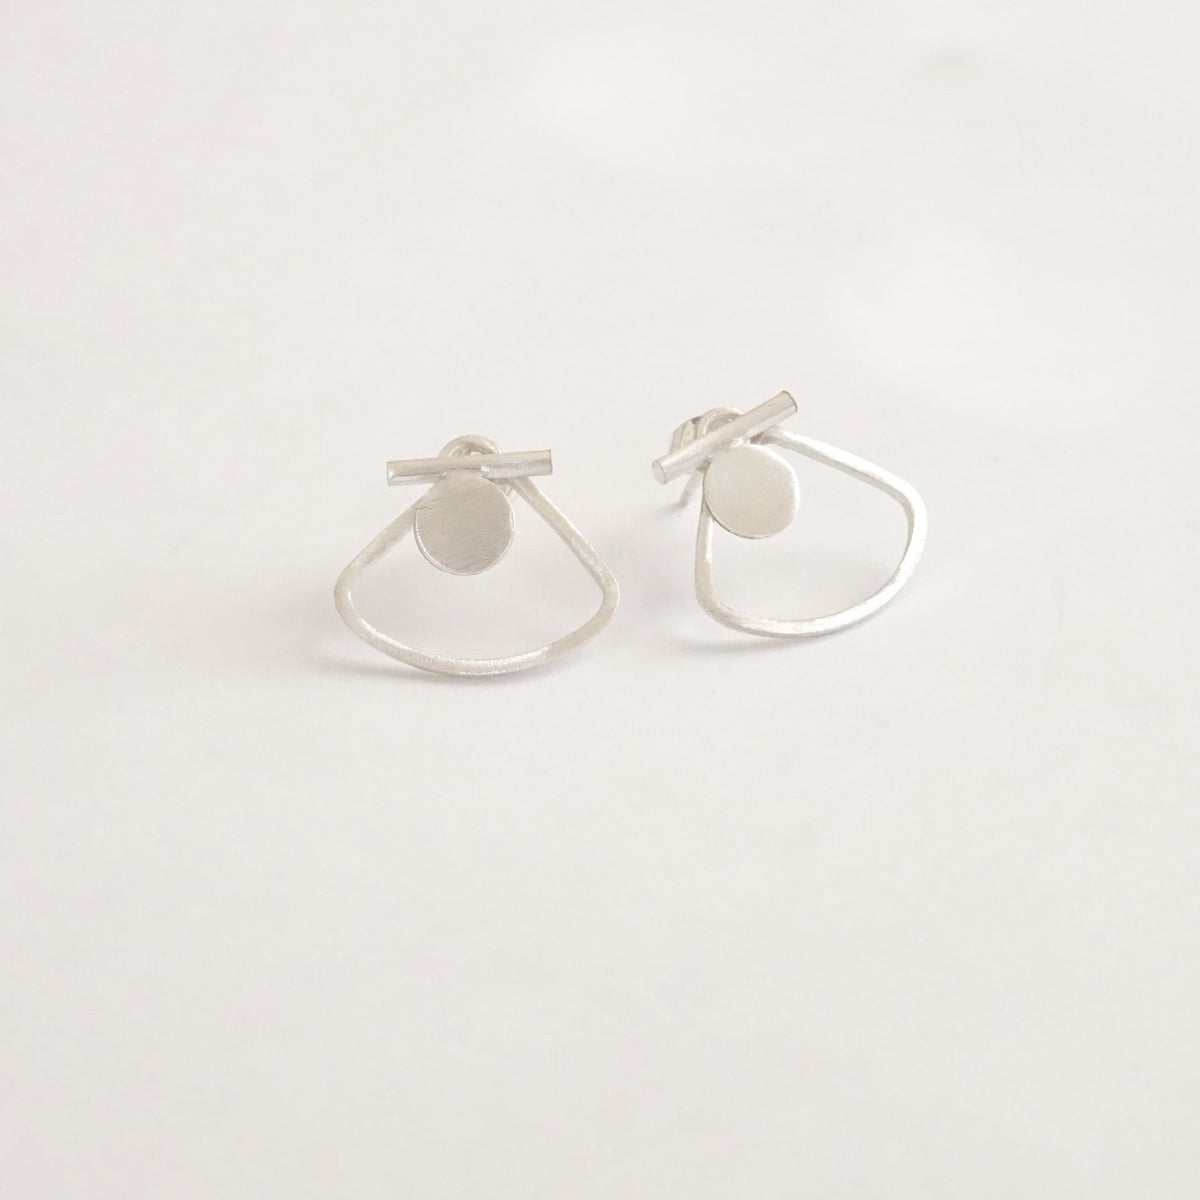 Modern Hand-Made Half Circle Ear Jacket w/ Solid Bar & Flat Circle Designer Stud Earrings - 0223 - Virginia Wynne Designs